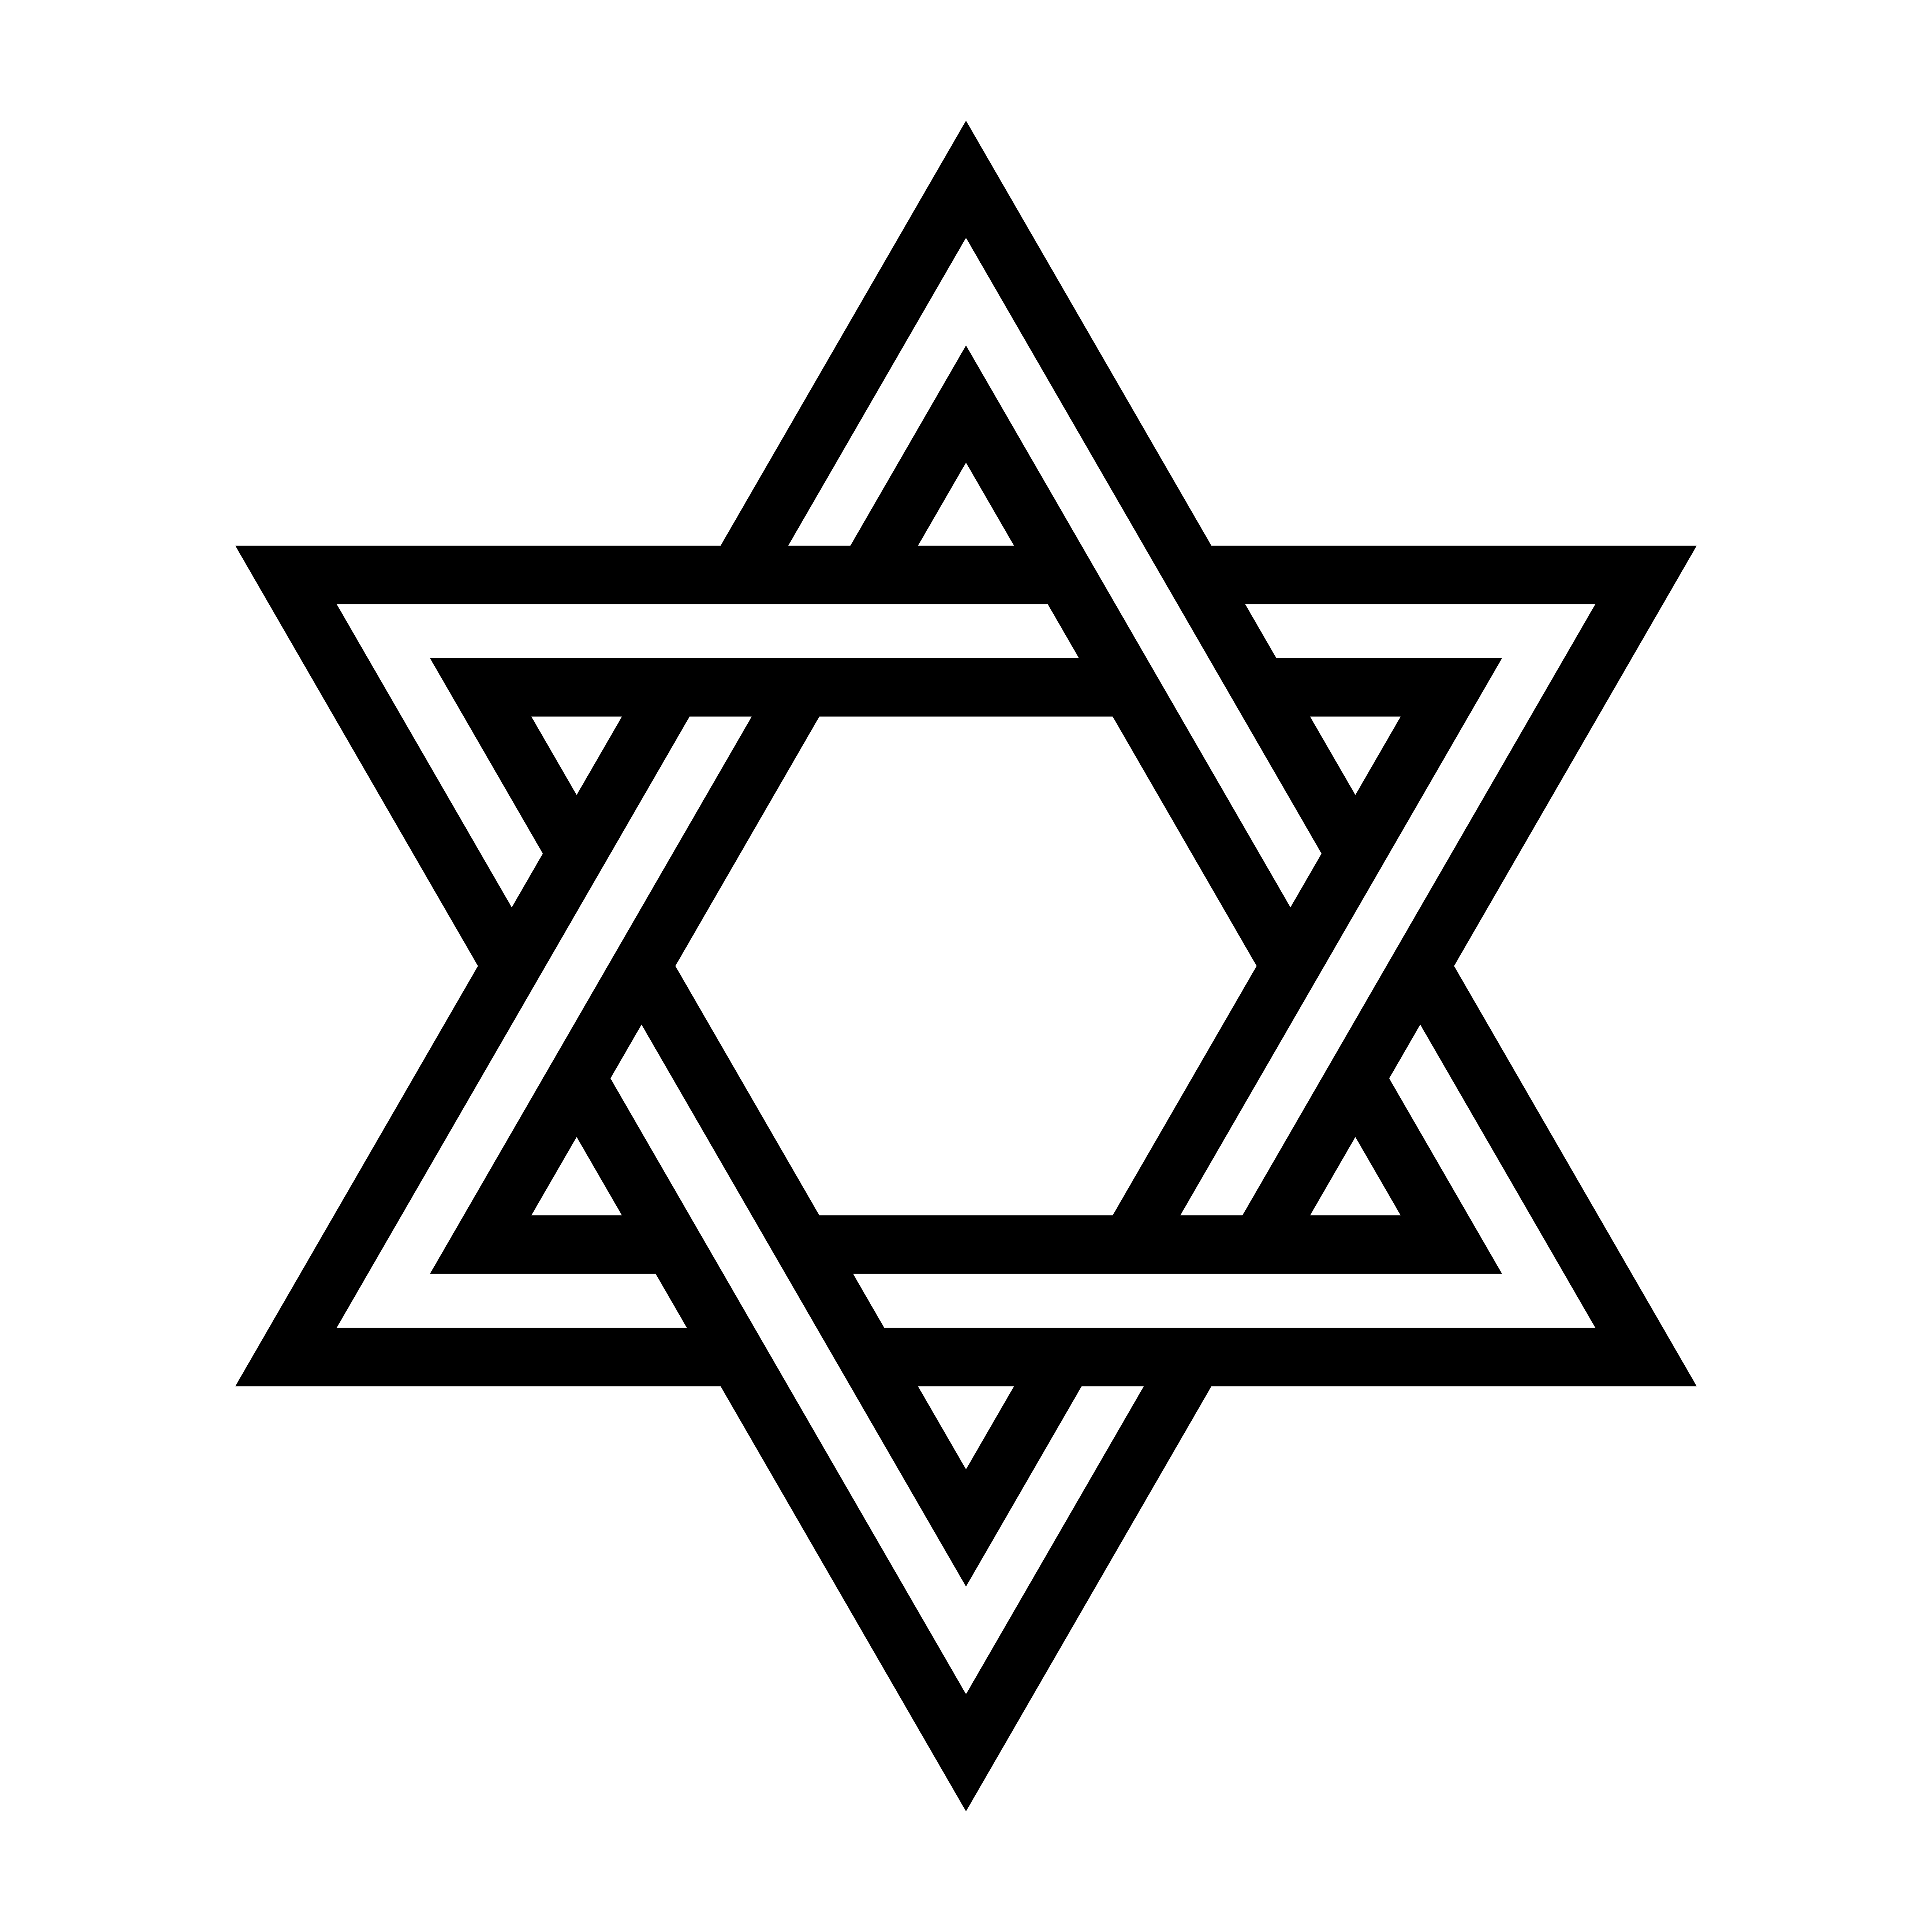 Jewish Star Of David Six Pointed Star In Black With Interlocking Style Vector Icon Download Free Vectors Clipart Graphics Vector Art